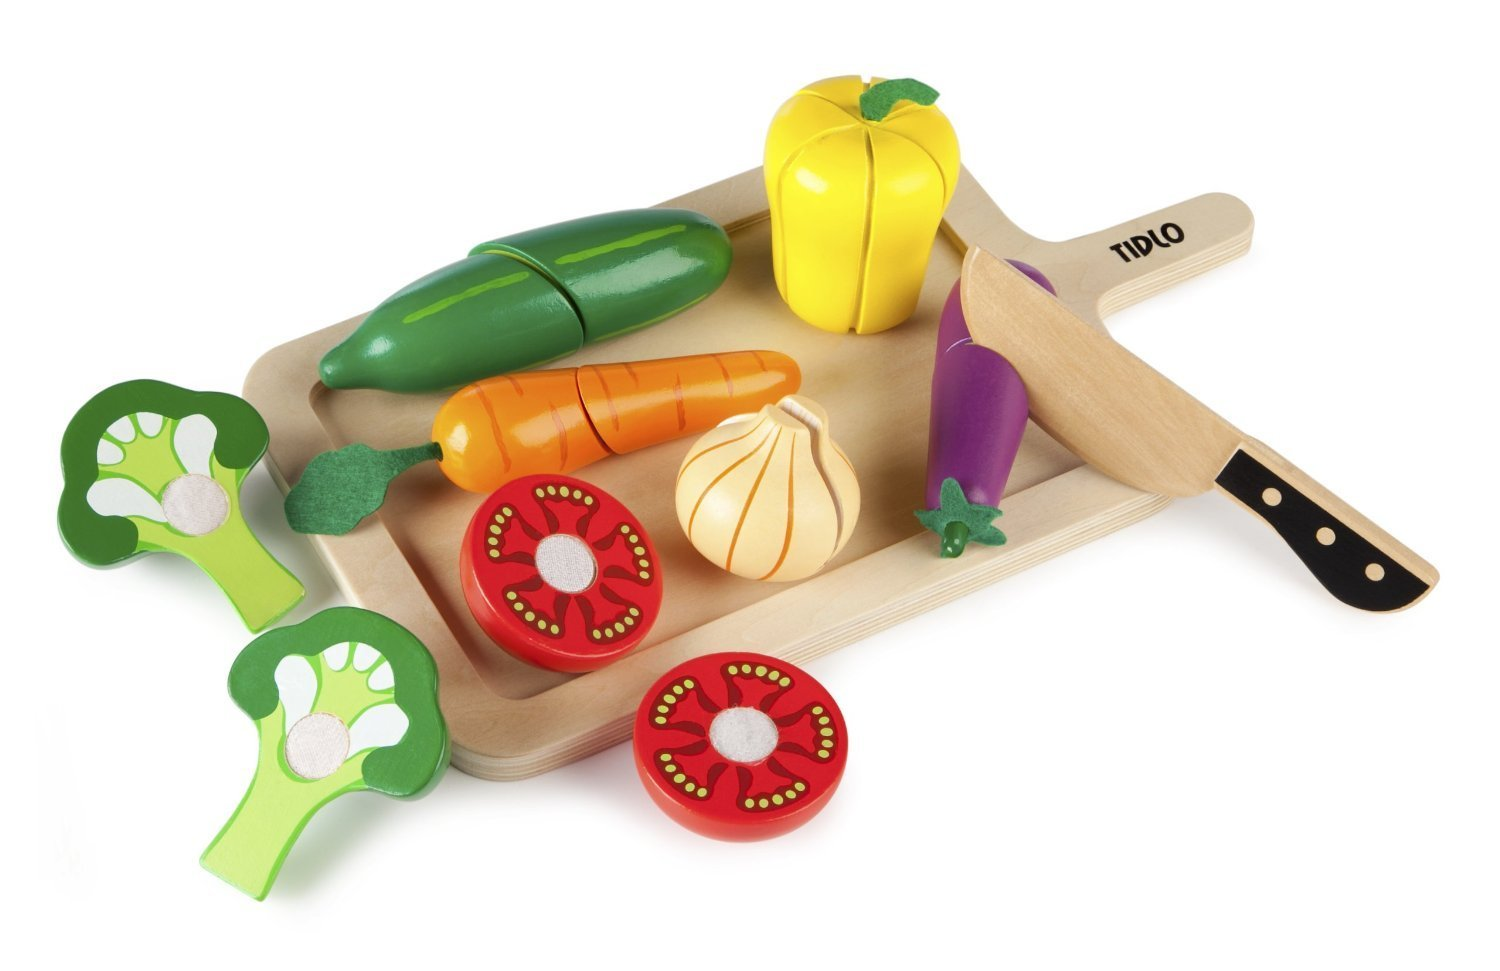 Wooden veg chopping set - Cooking is not just for the girls! Join in at food prep time. This Tidlo set is realistic enough to care about what it looks like when you cut the pieces apart and has a good-looking board and knife.Tidlo Vegetable set £14.99  Amazon